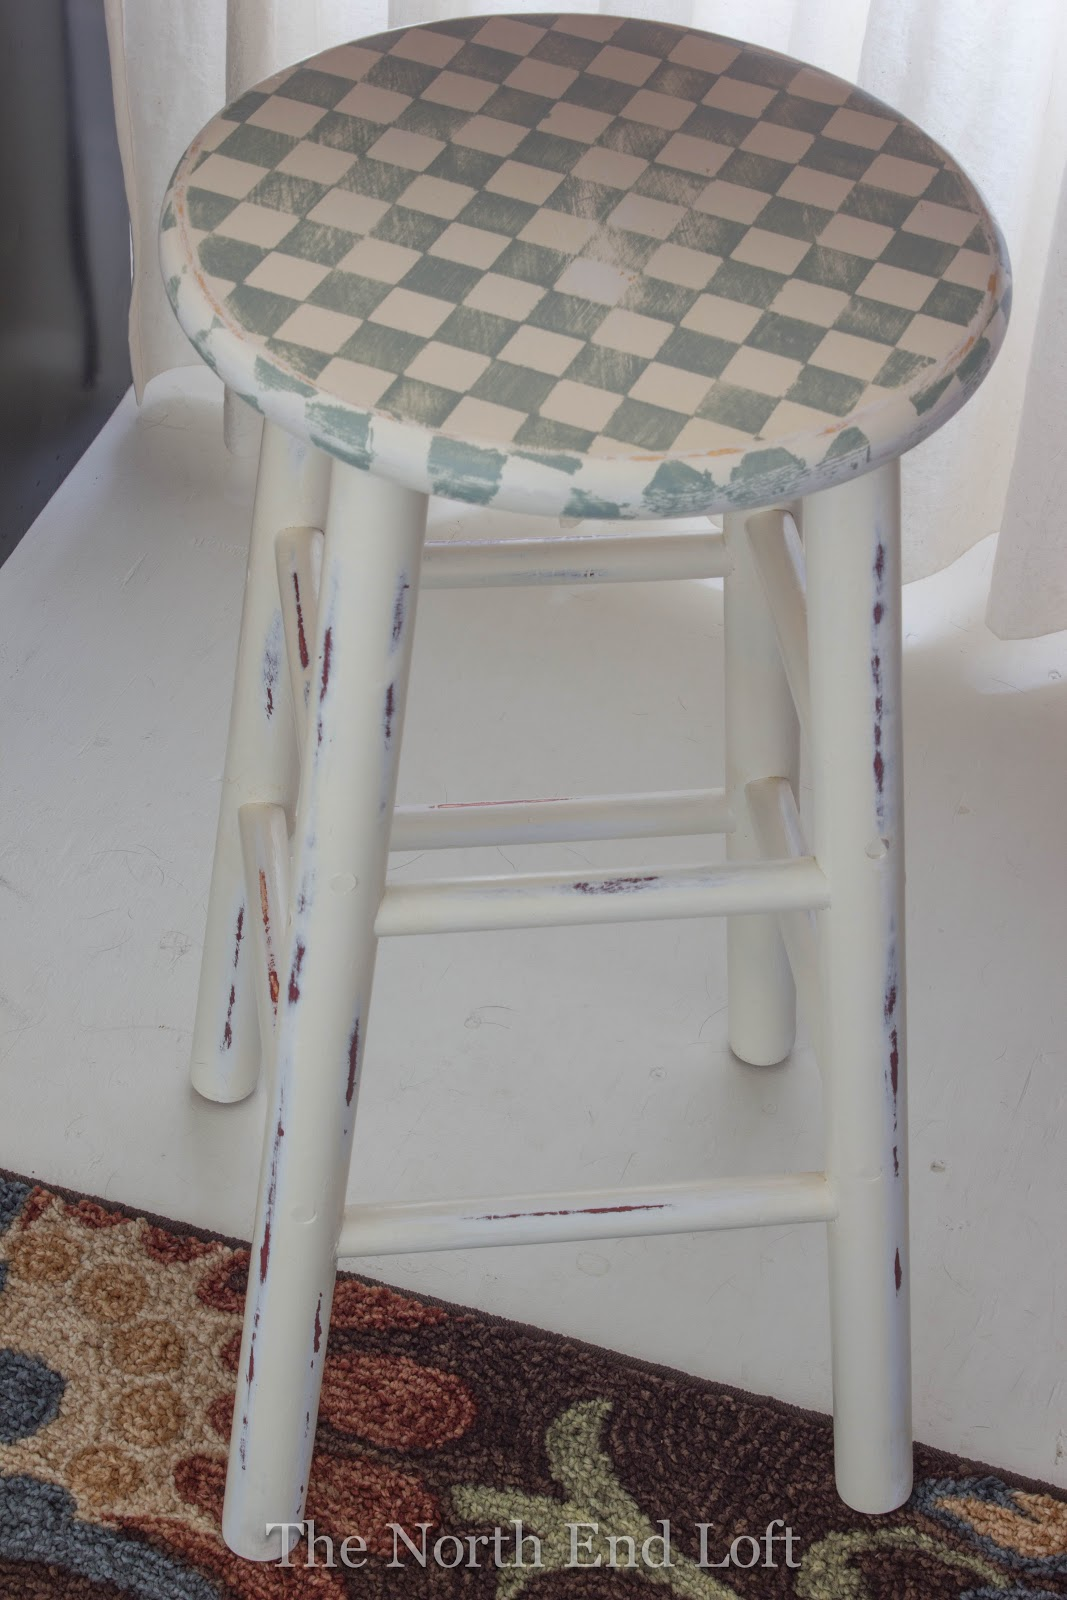 The North End Loft: Craft Room Stool